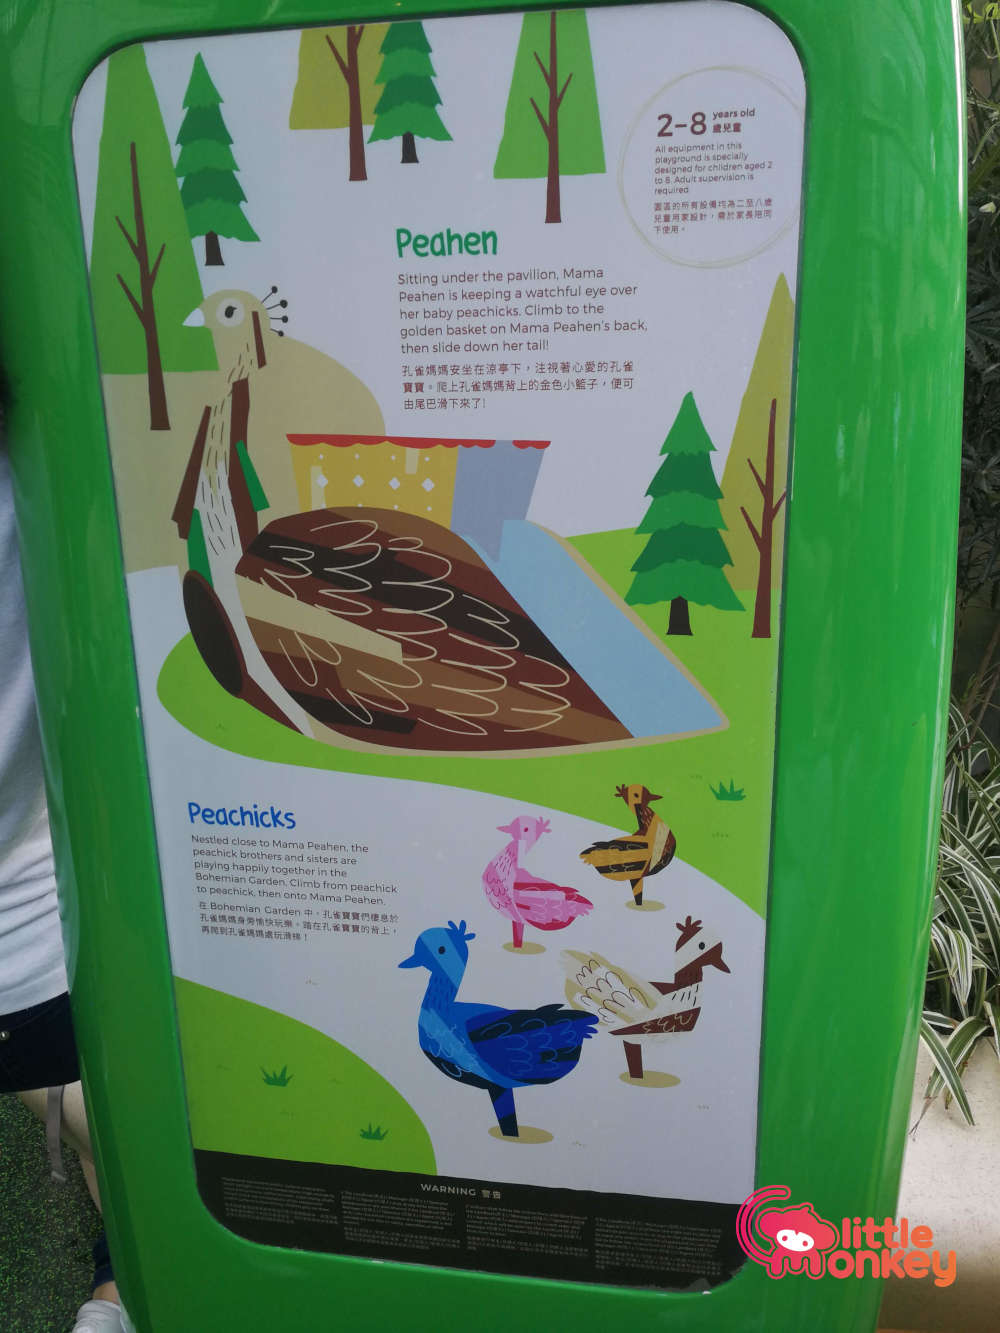 K11 Musea Peacock Playground Sign